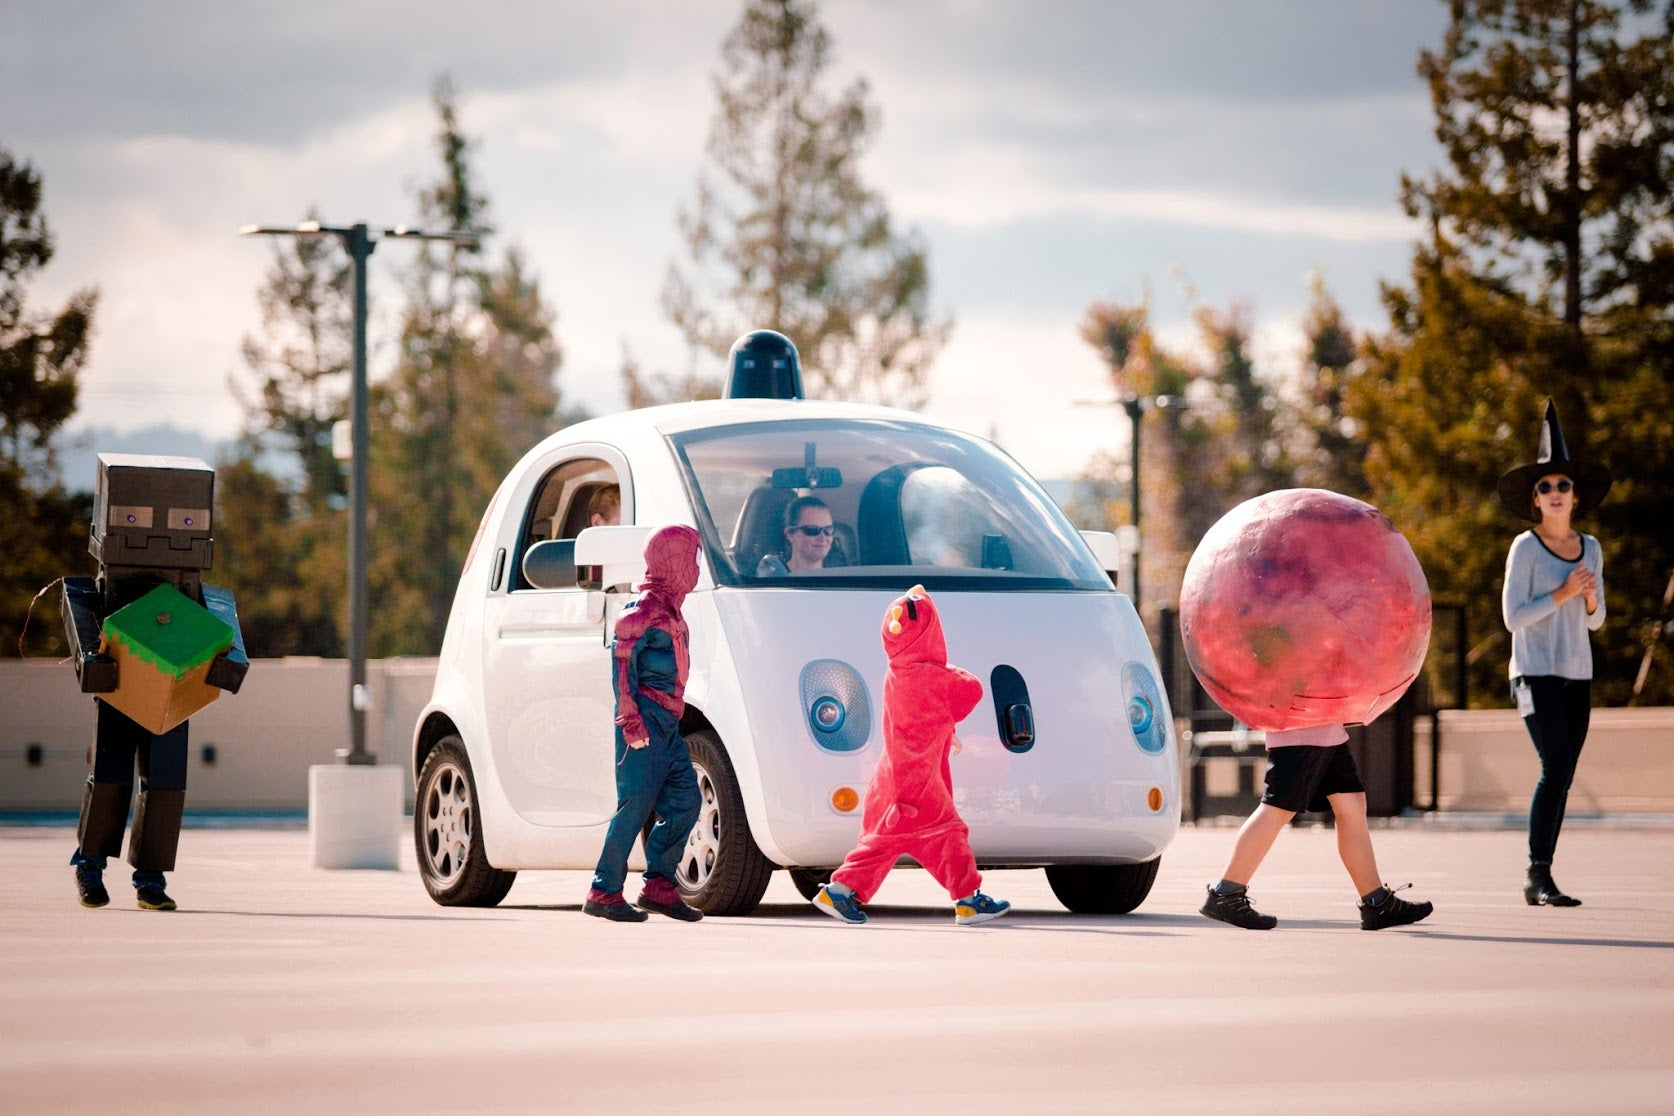 Google's Self-Driving Cars Are More Careful Around Kids